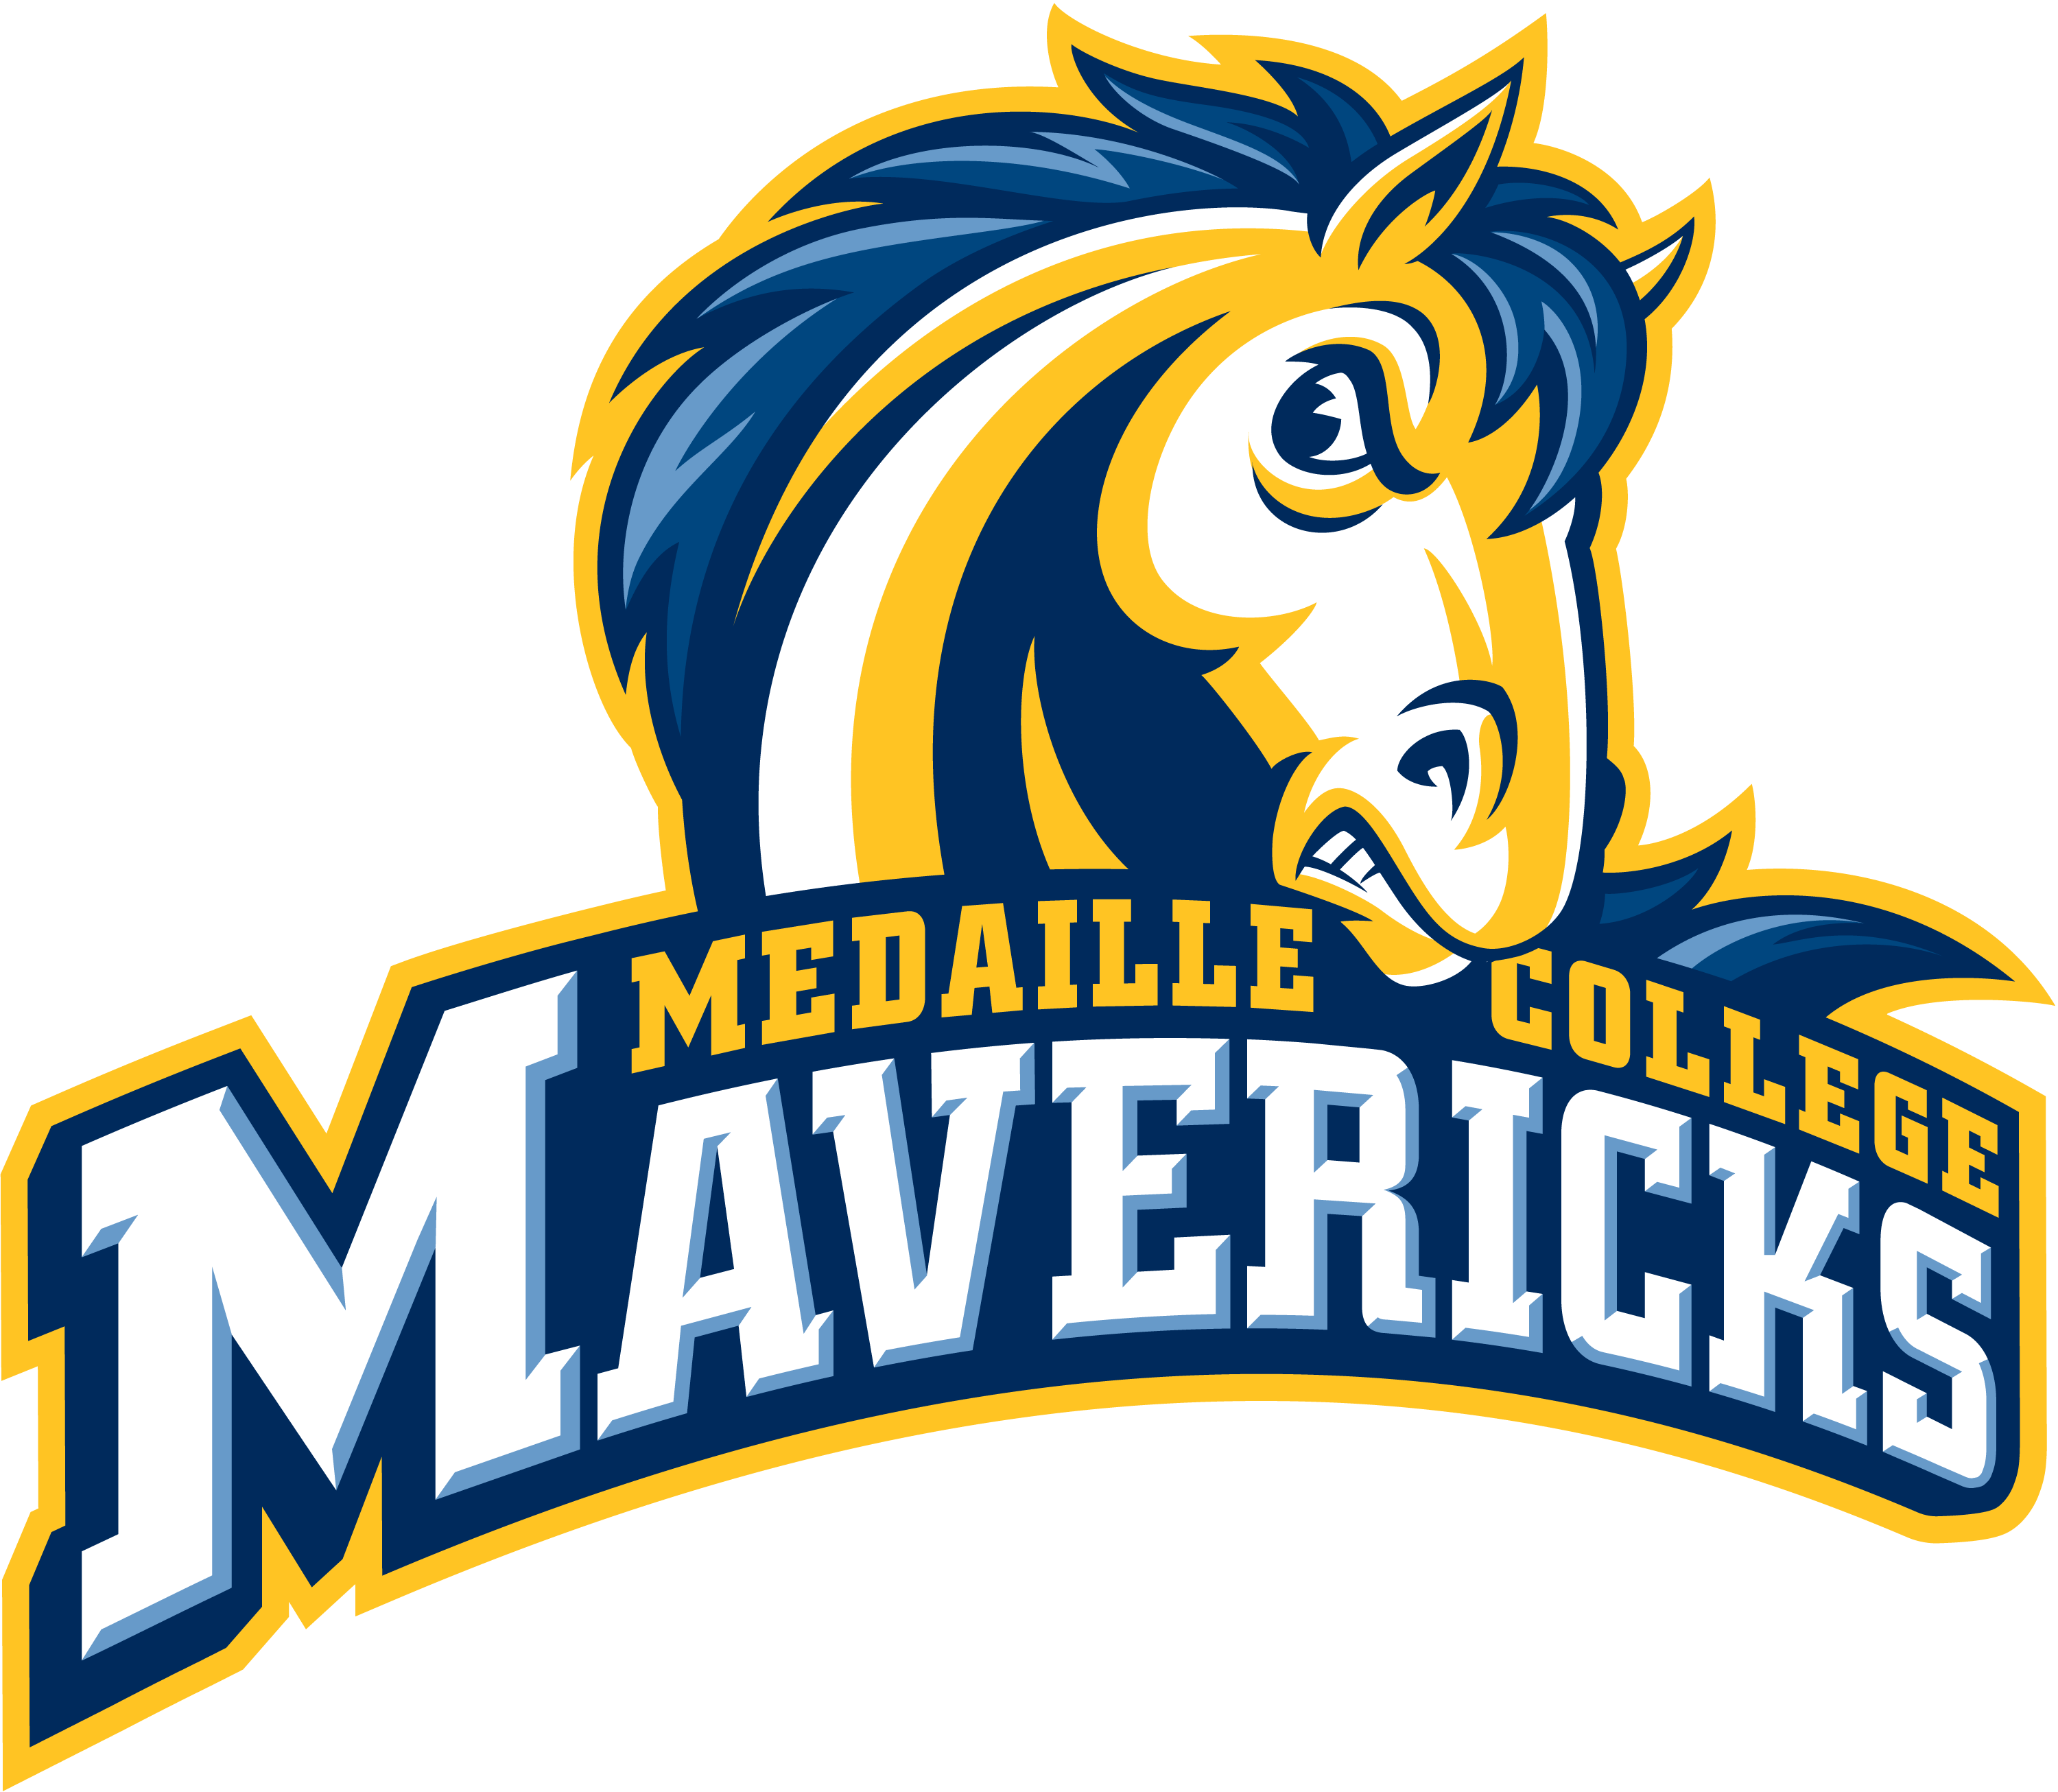 Medaille Mavericks Athletics